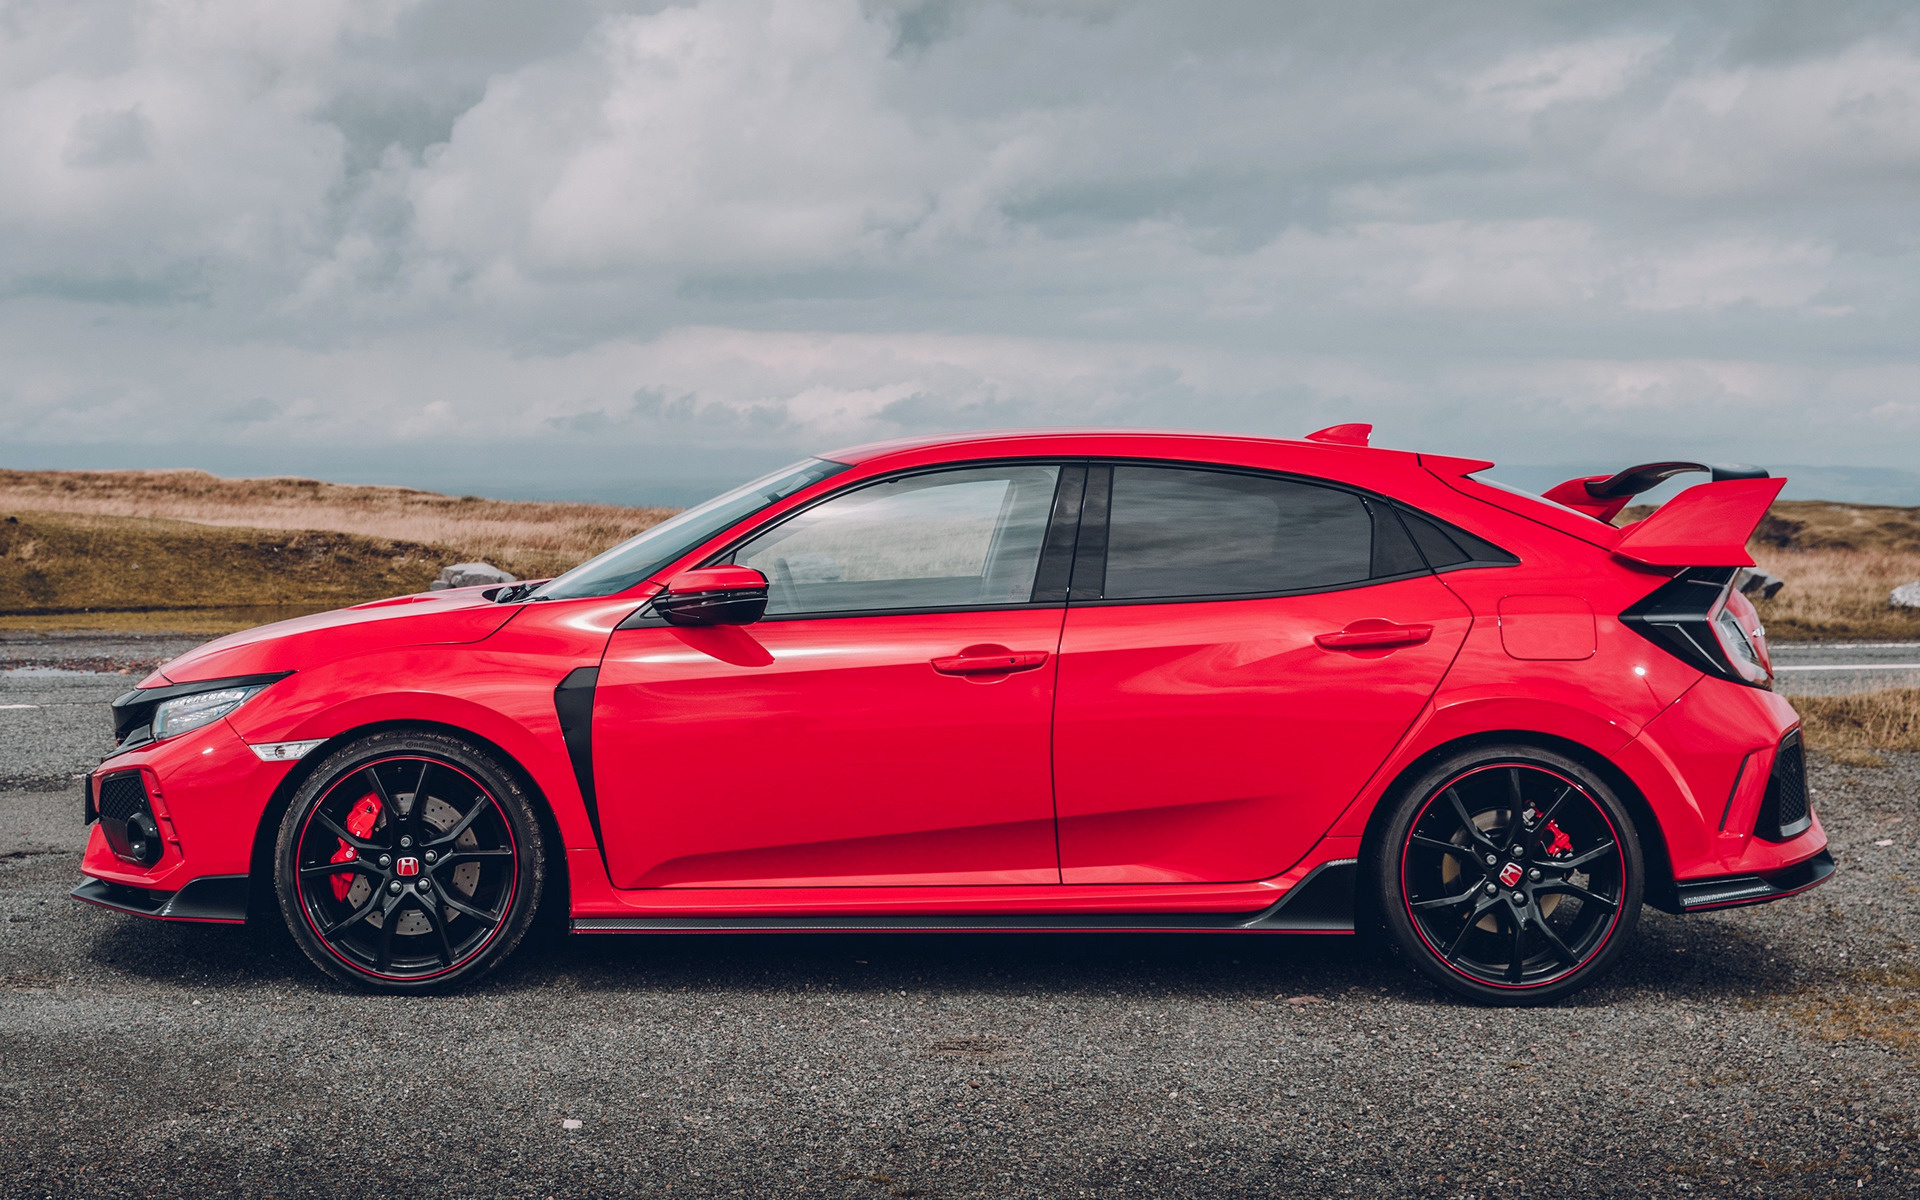 Honda Civic Type R Car Wallpaper on Honda Type R